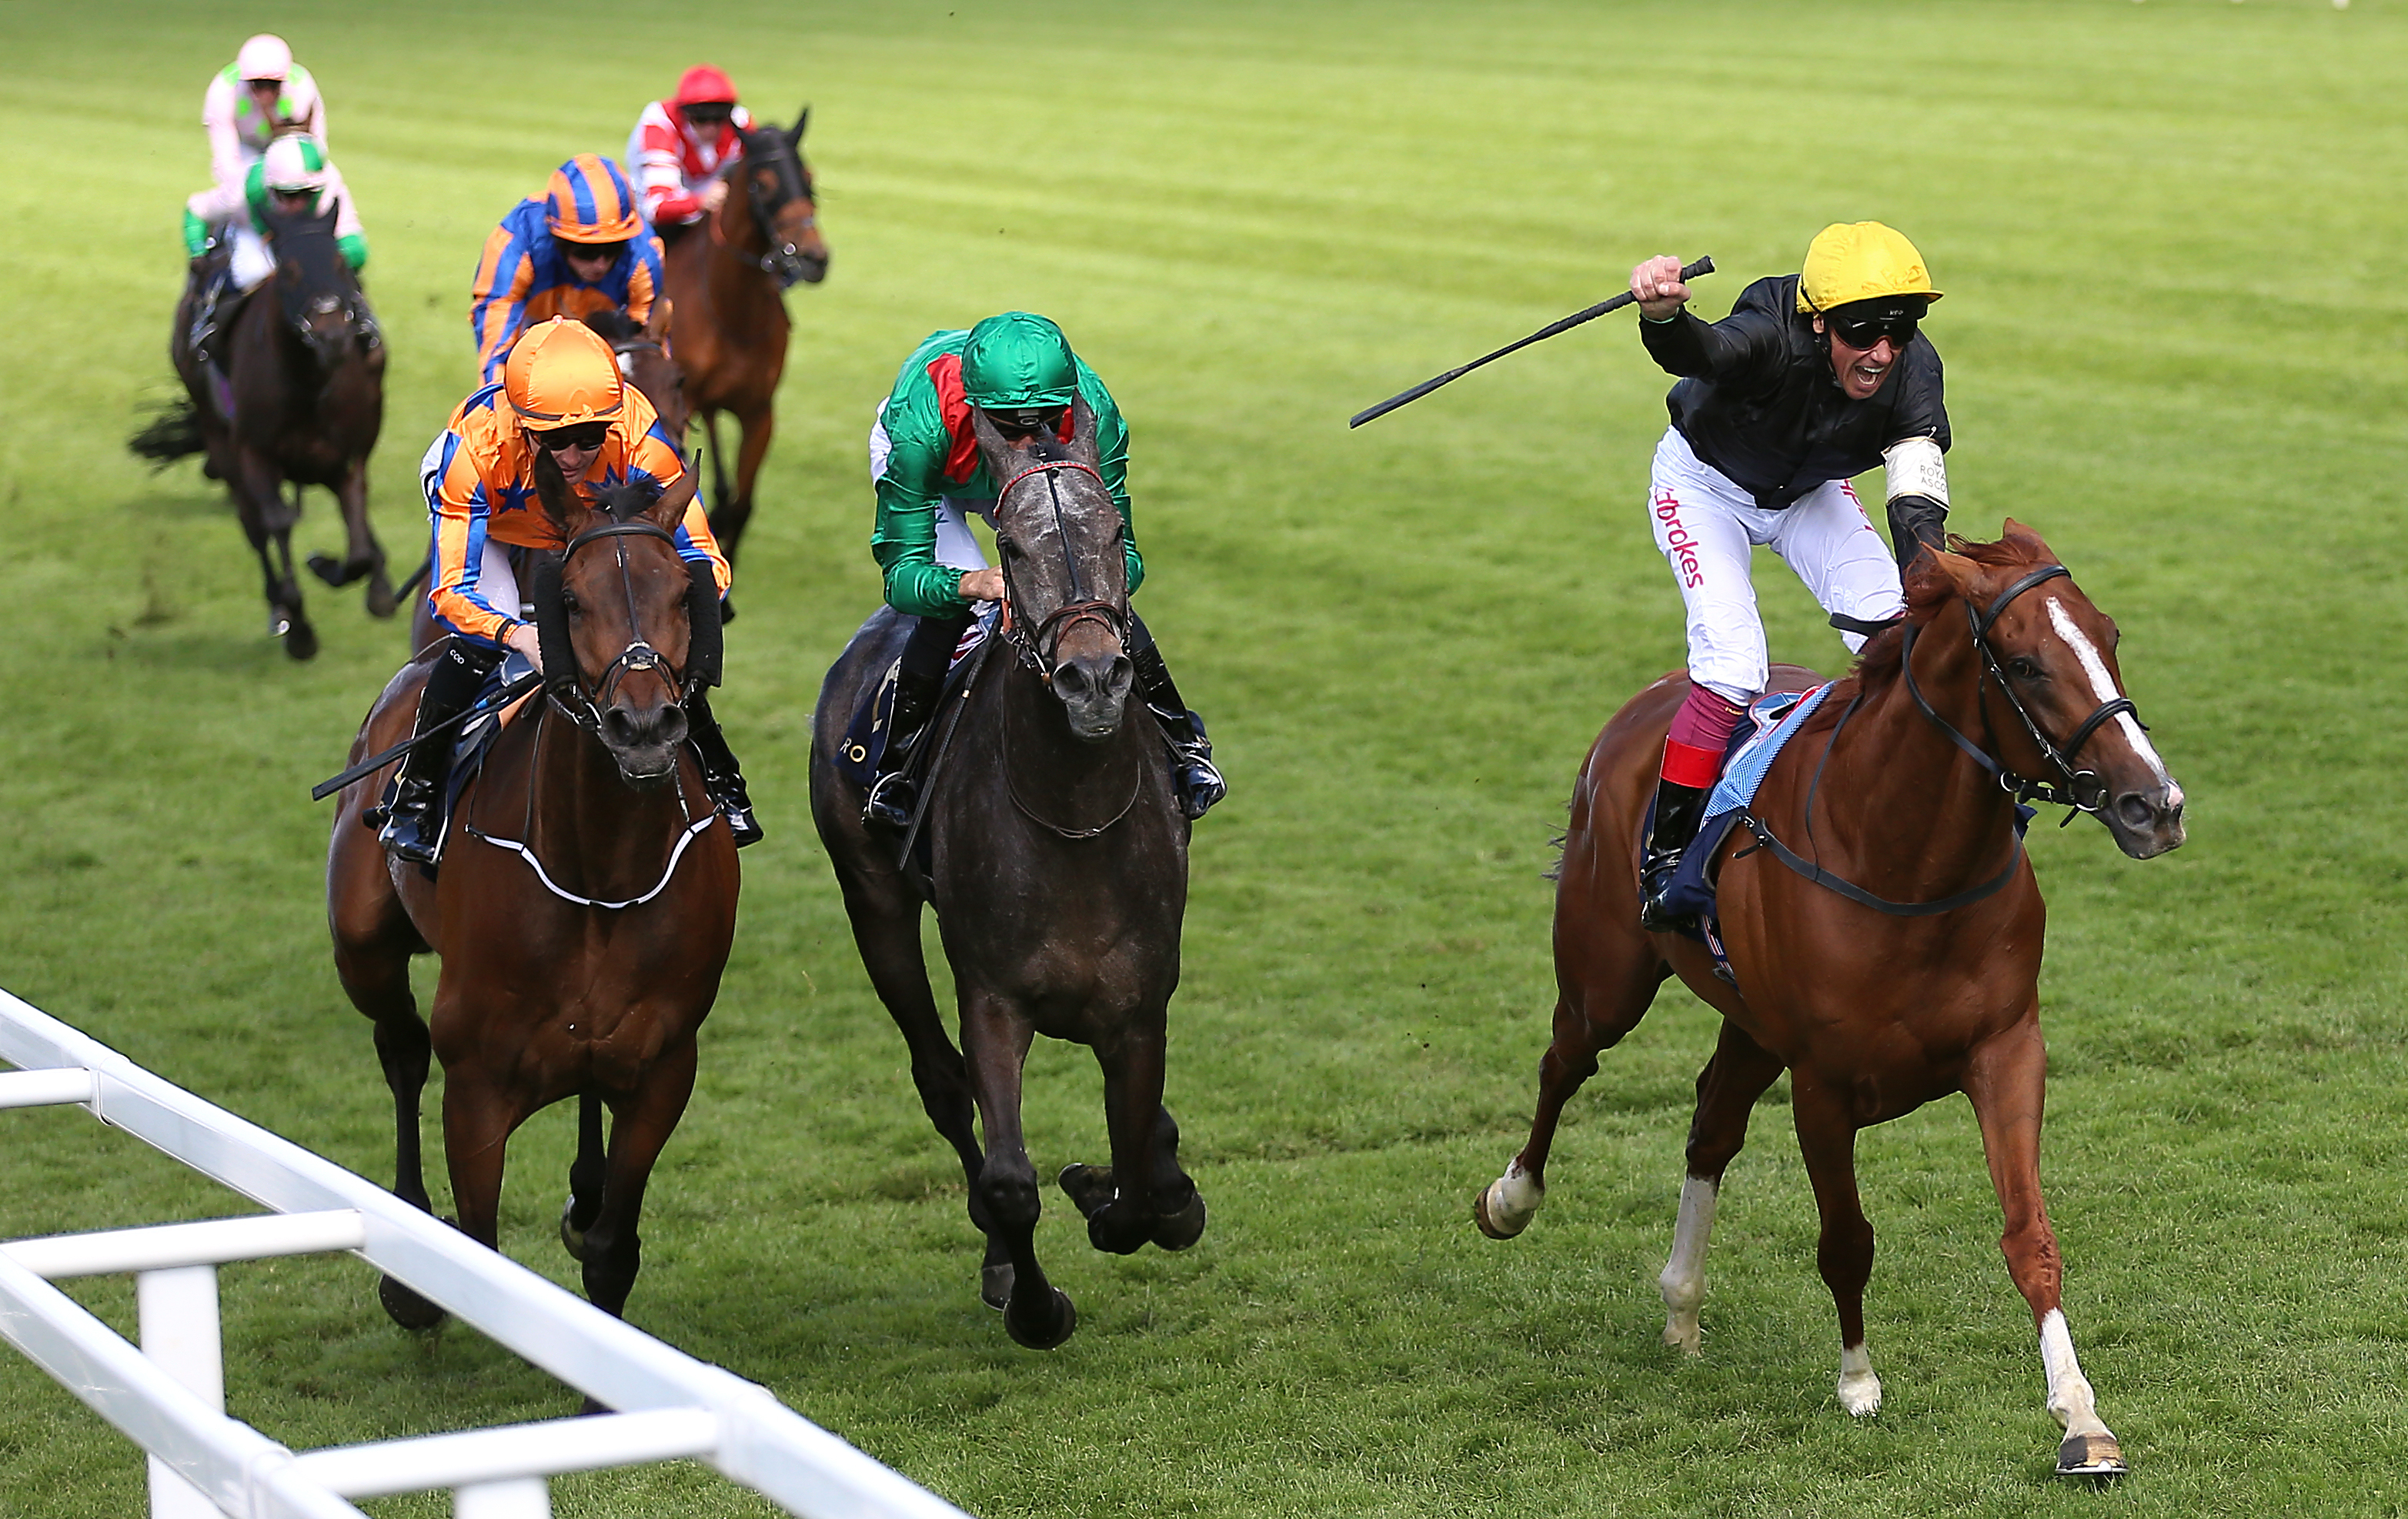 Torcedor (left) will clash with Stradivarius again in the Goodwood Cup